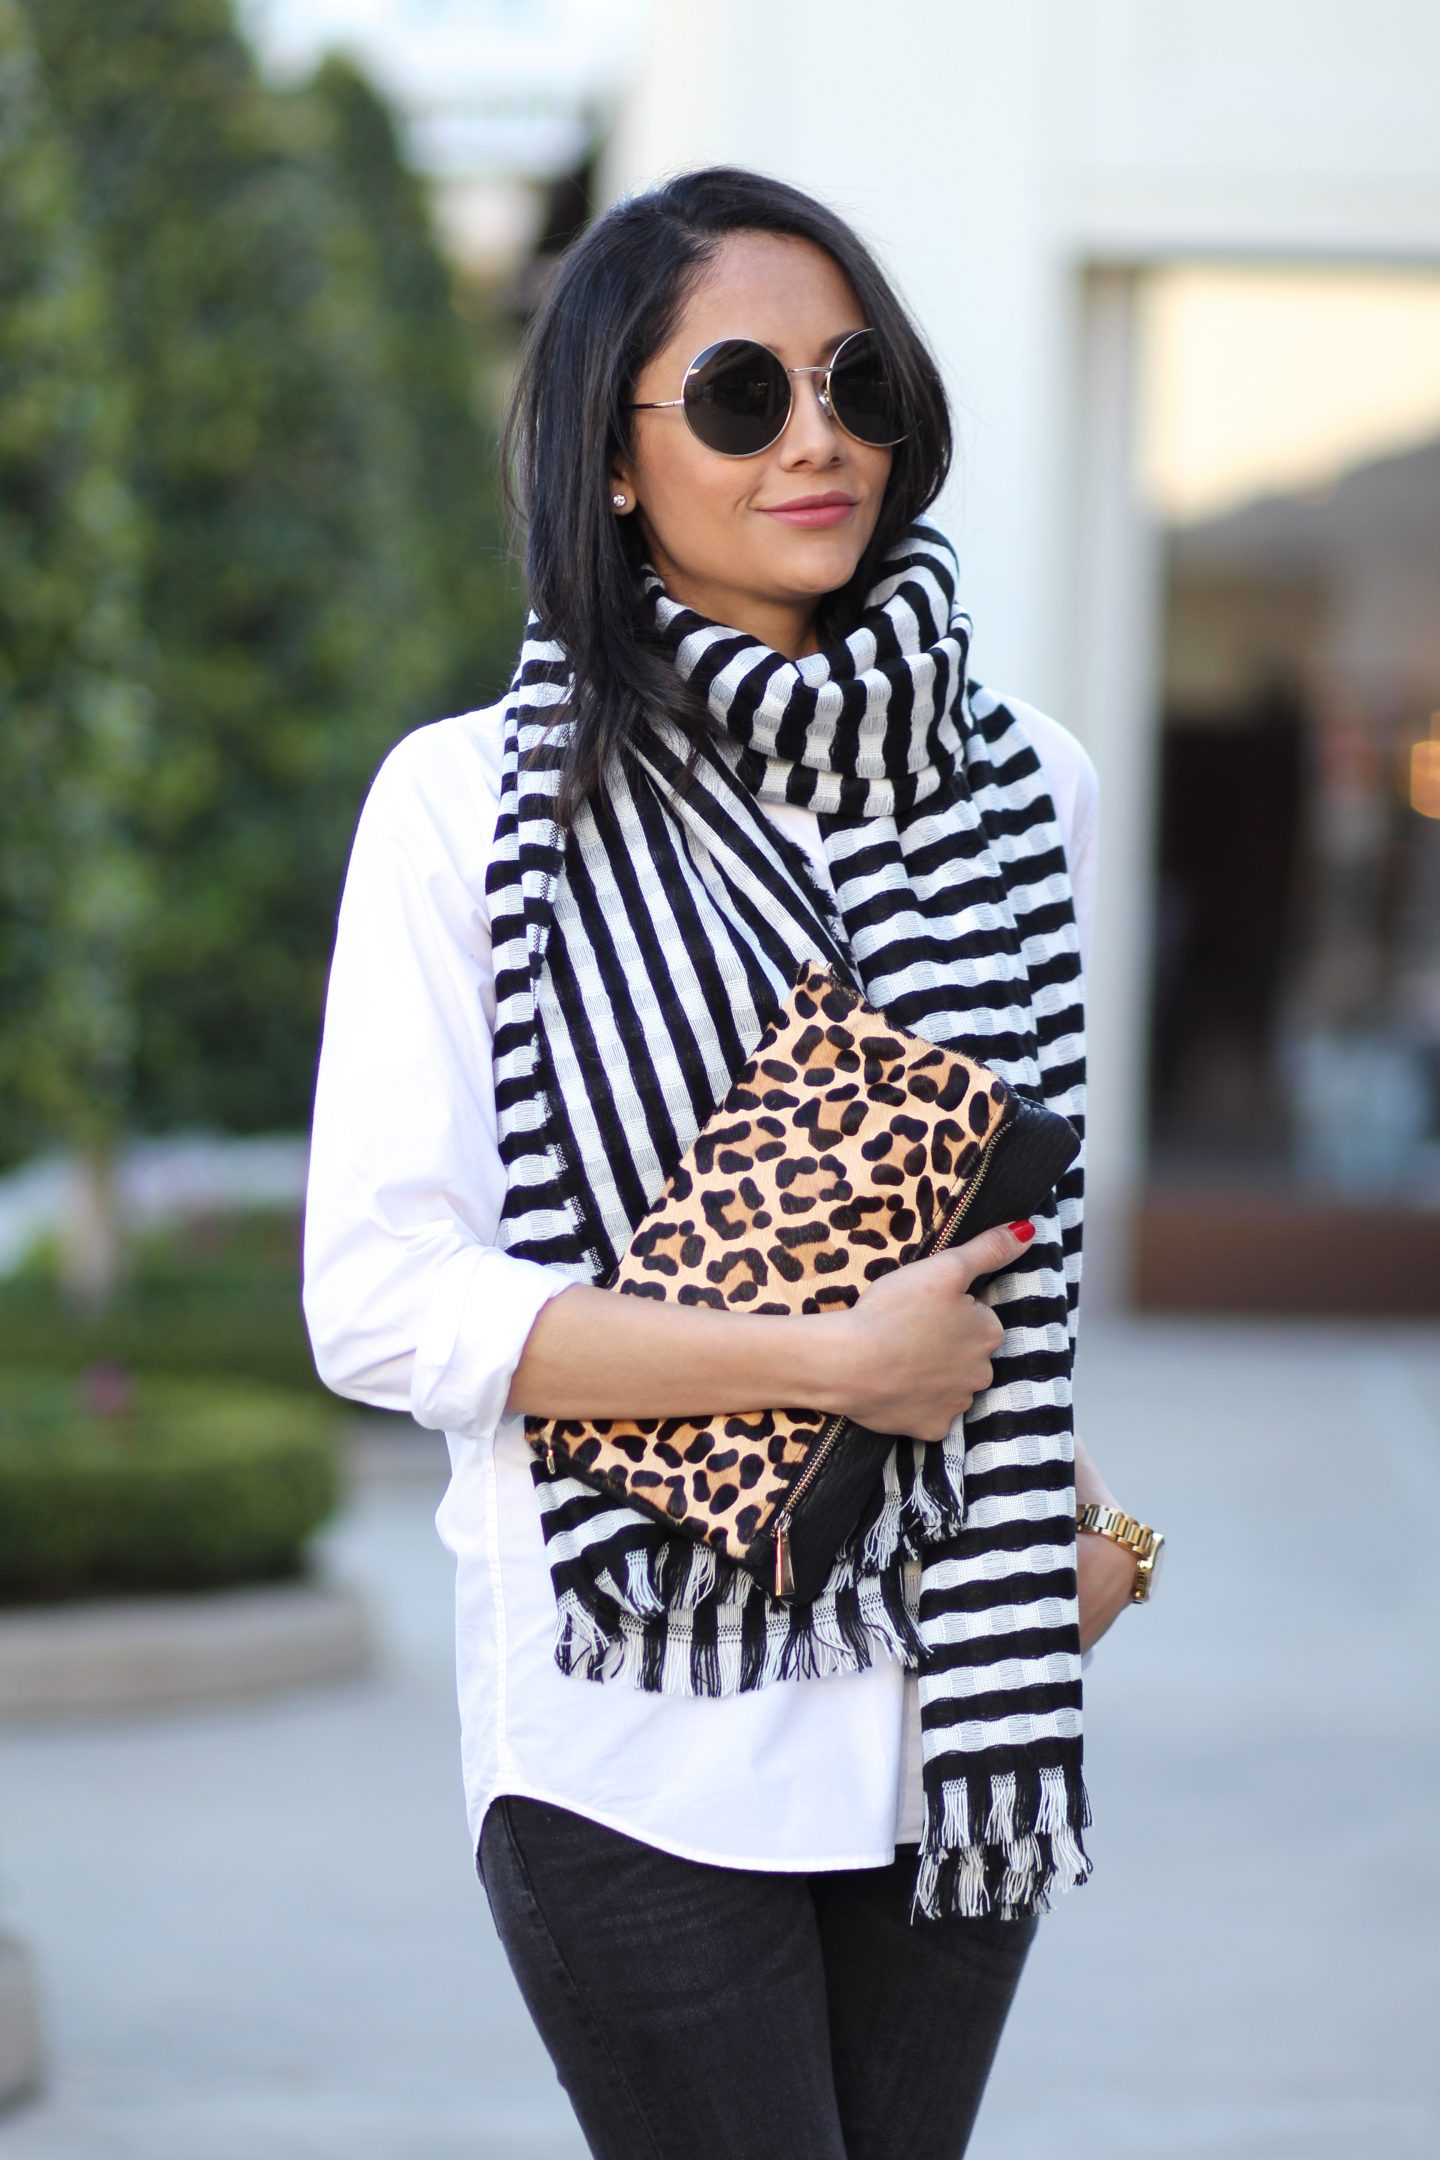 Striped Scarf + A Touch Of Leopard For Fall